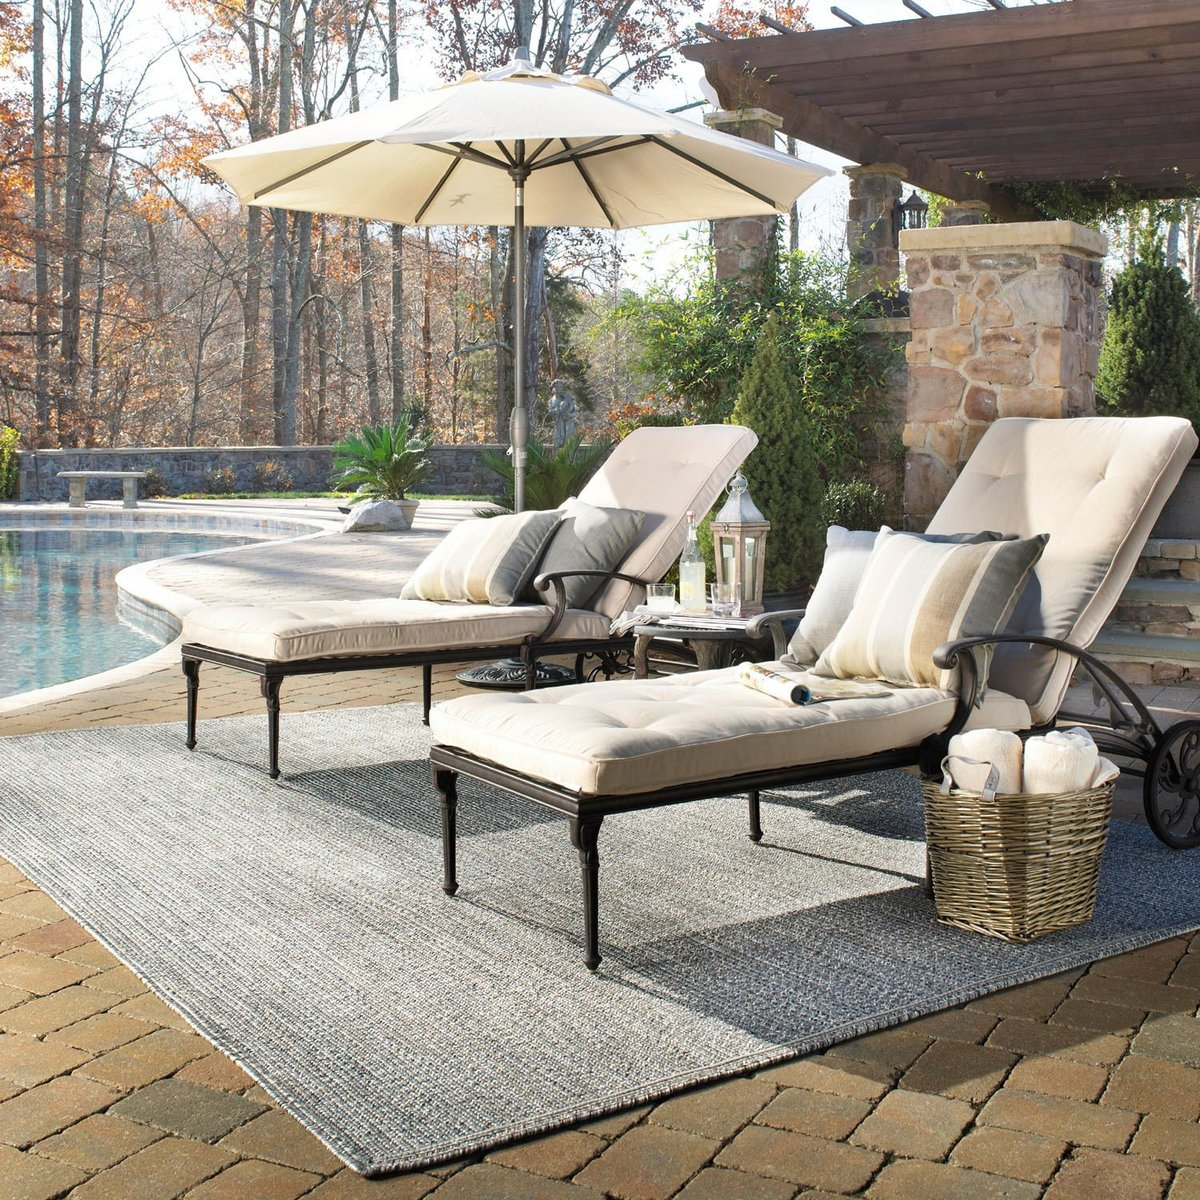 Poolside Bliss Outdoor Rug Ideas